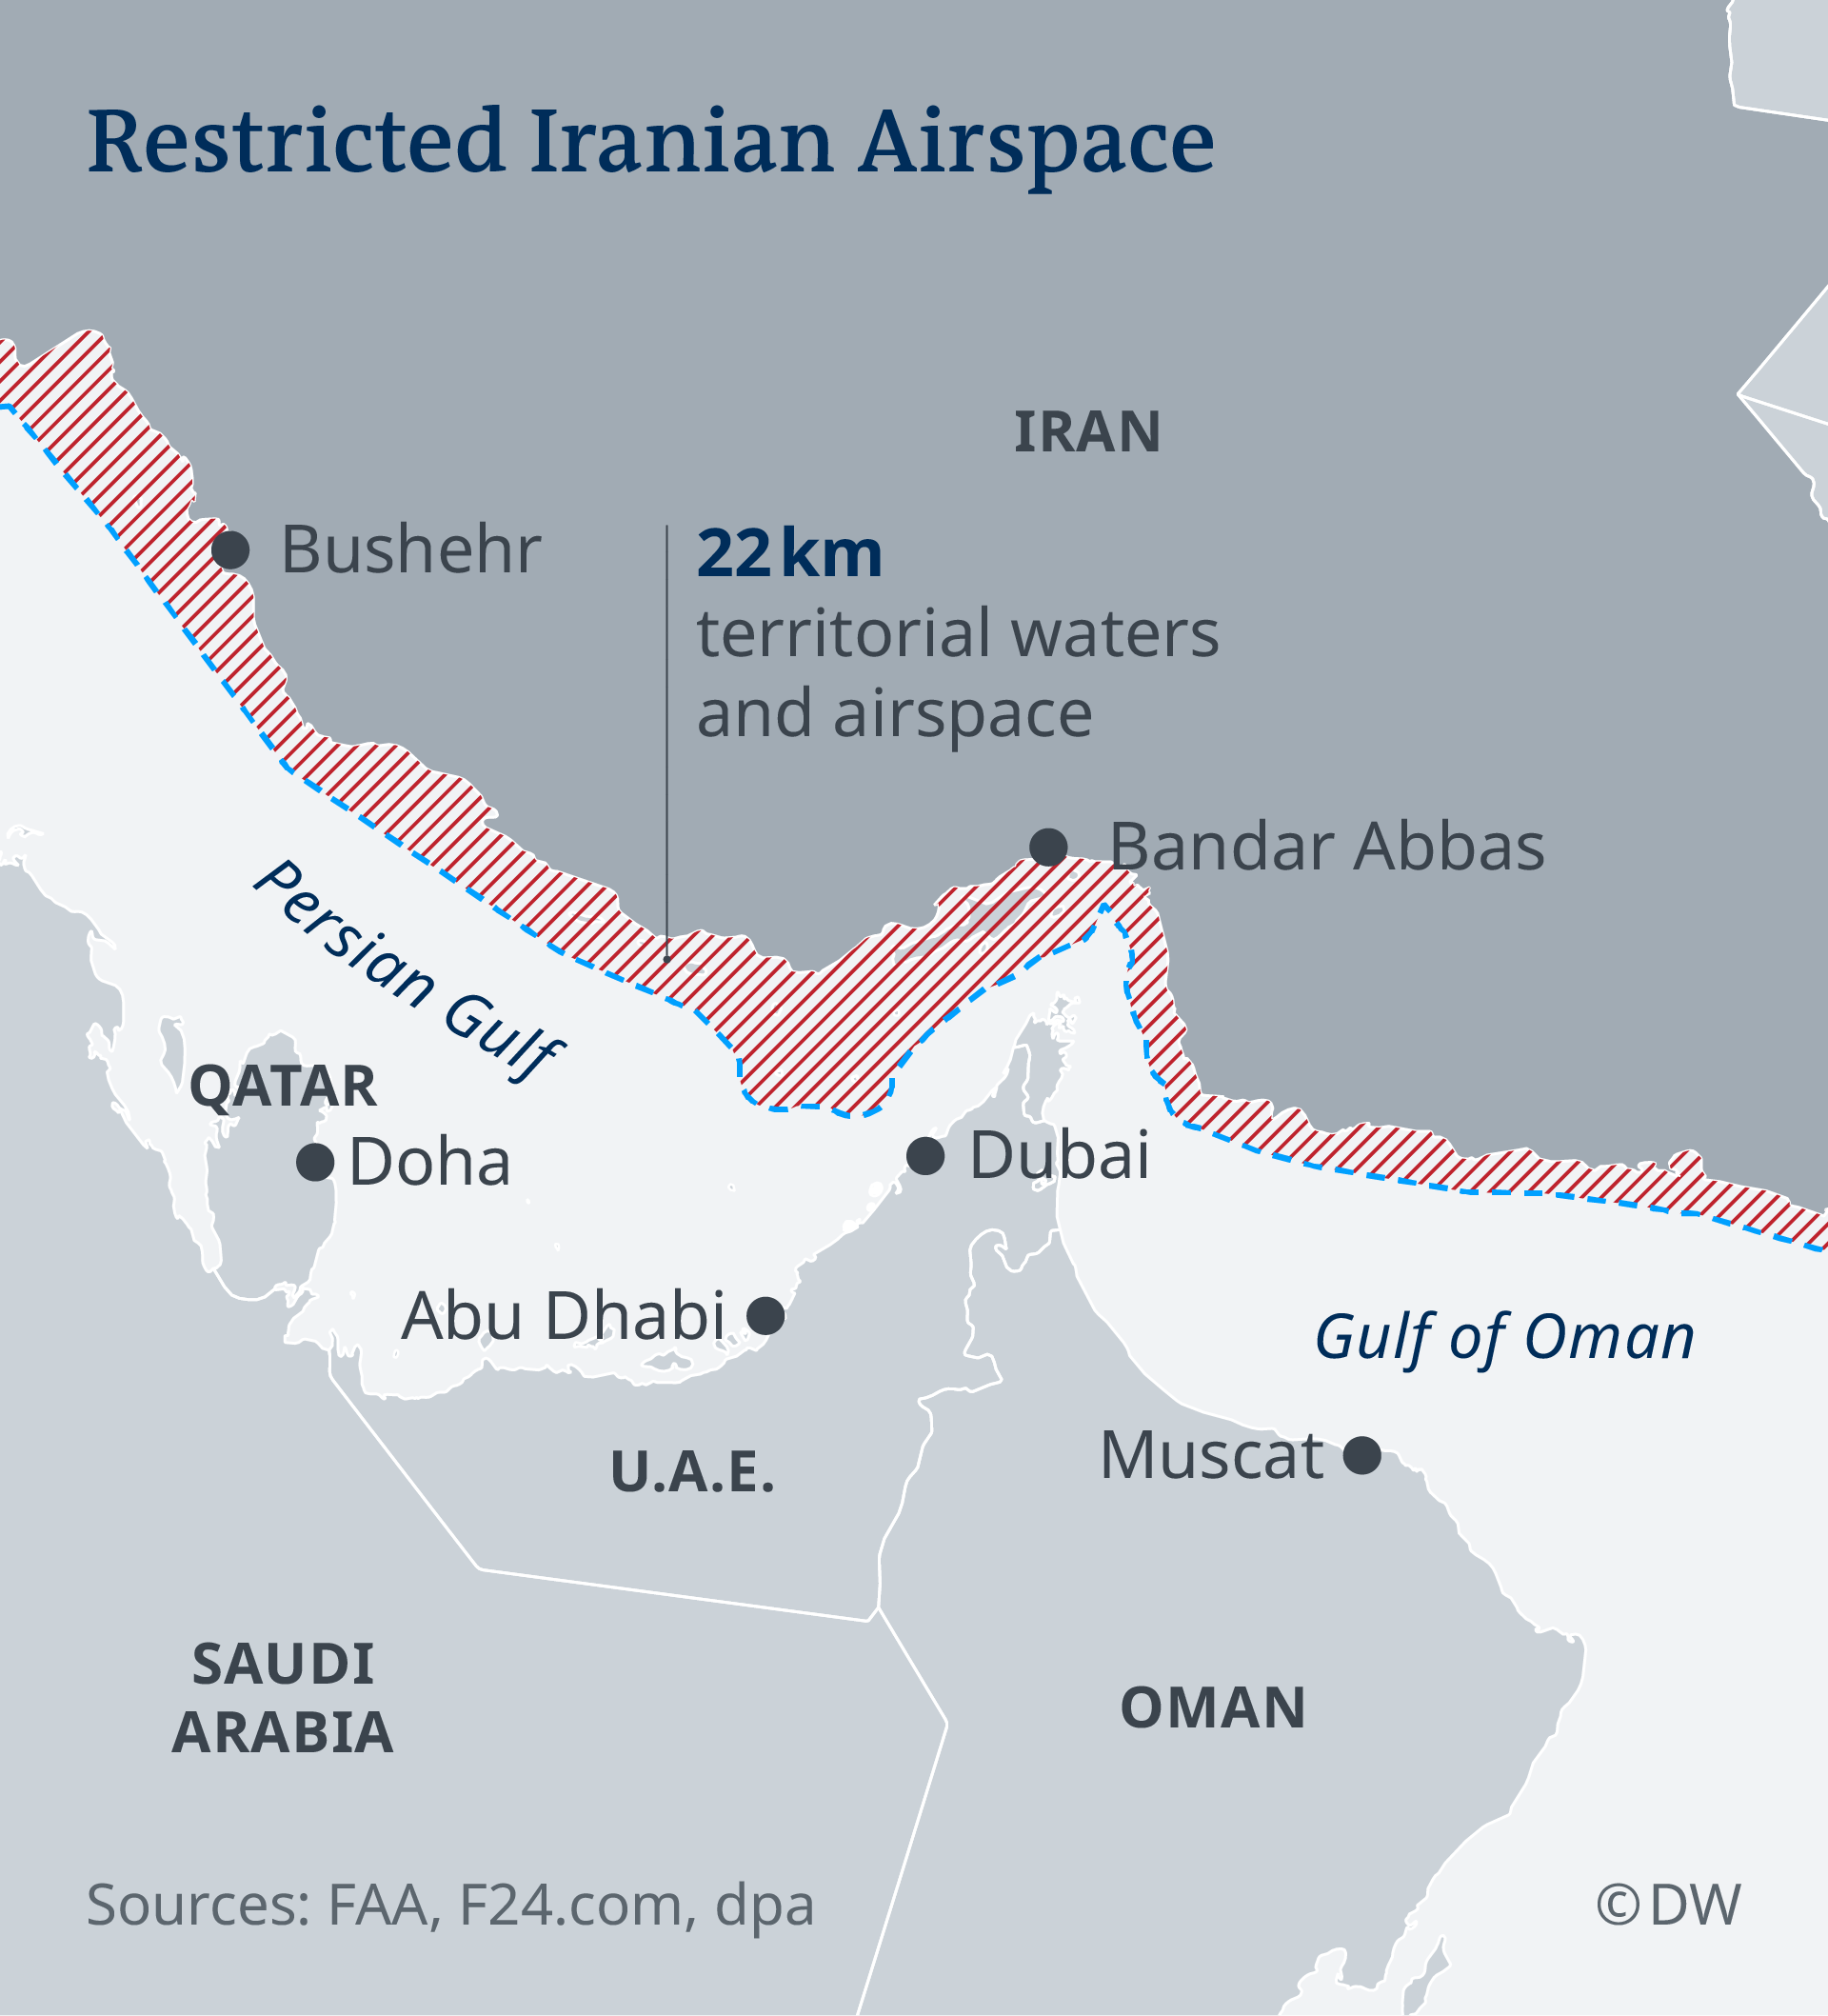 Restricted Iranian Airspace